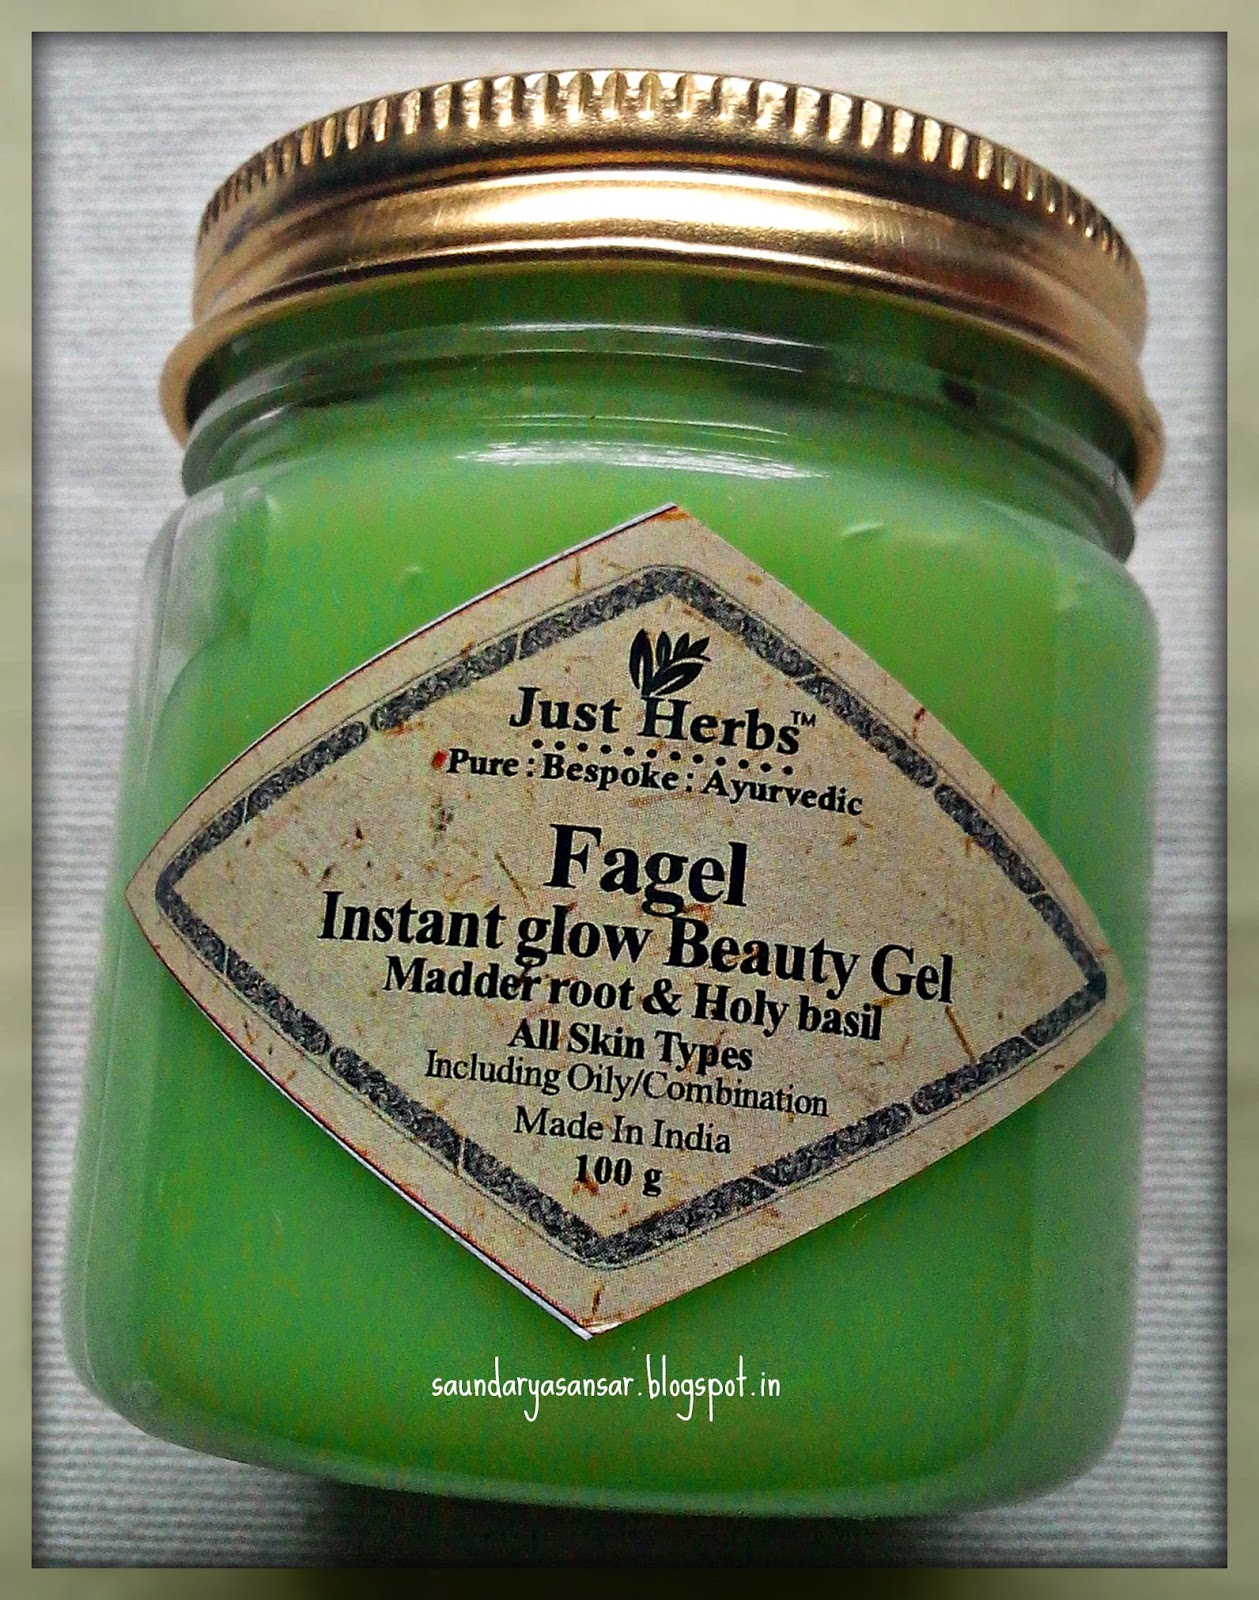 Just-Herbs-Fagel-Instant-Glow-Beauty-Gel-Review